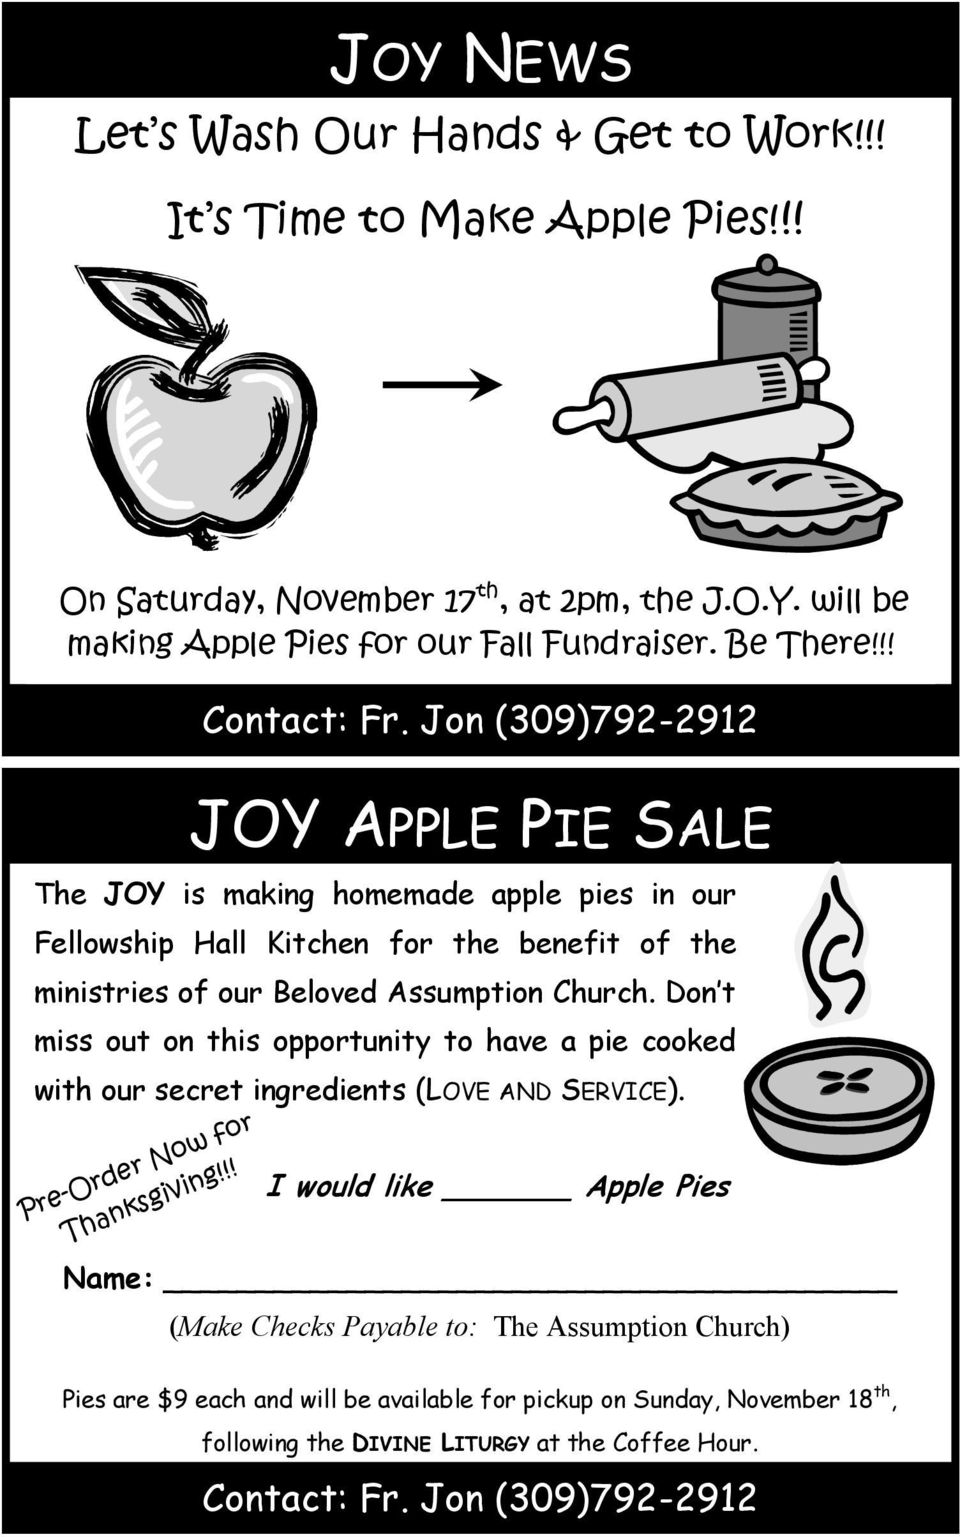 Jon (309)792-2912 JOY APPLE PIE SALE The JOY is making homemade apple pies in our Fellowship Hall Kitchen for the benefit of the ministries of our Beloved Assumption Church.